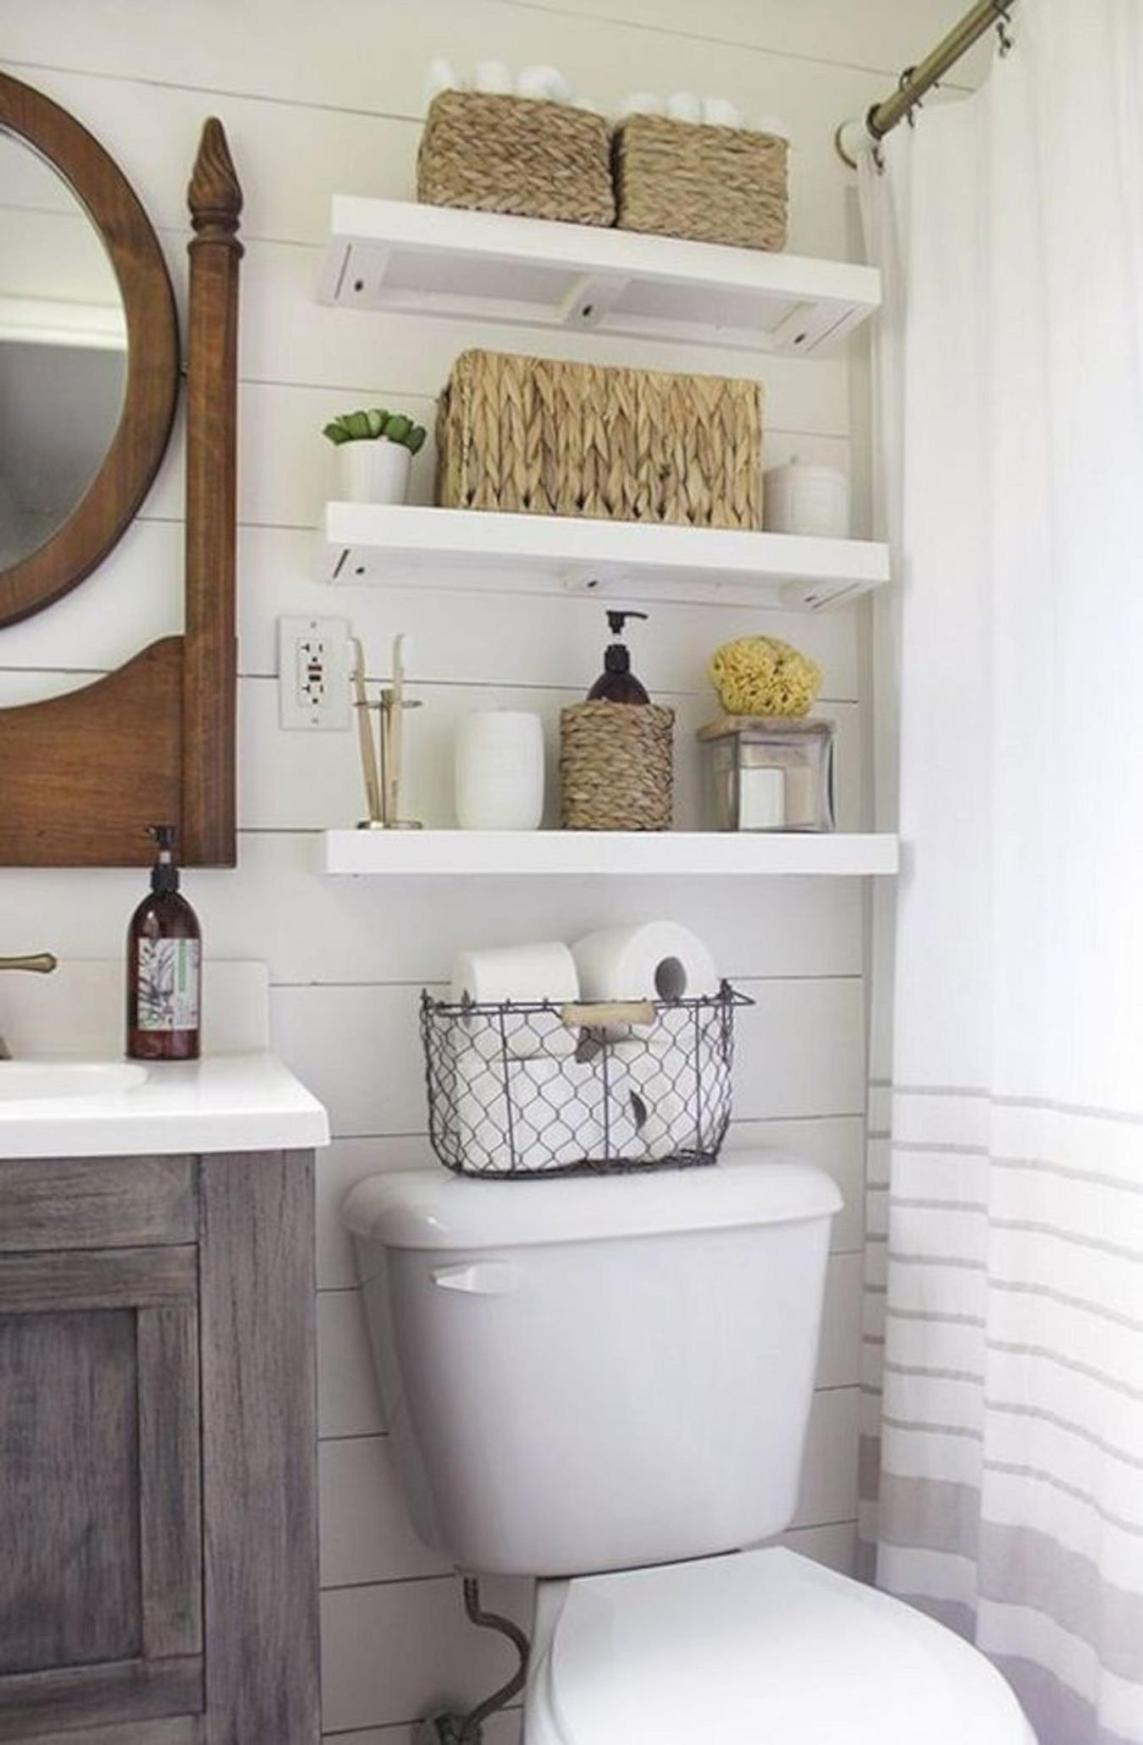 42 Perfect Small Bathroom Decorating Ideas 24